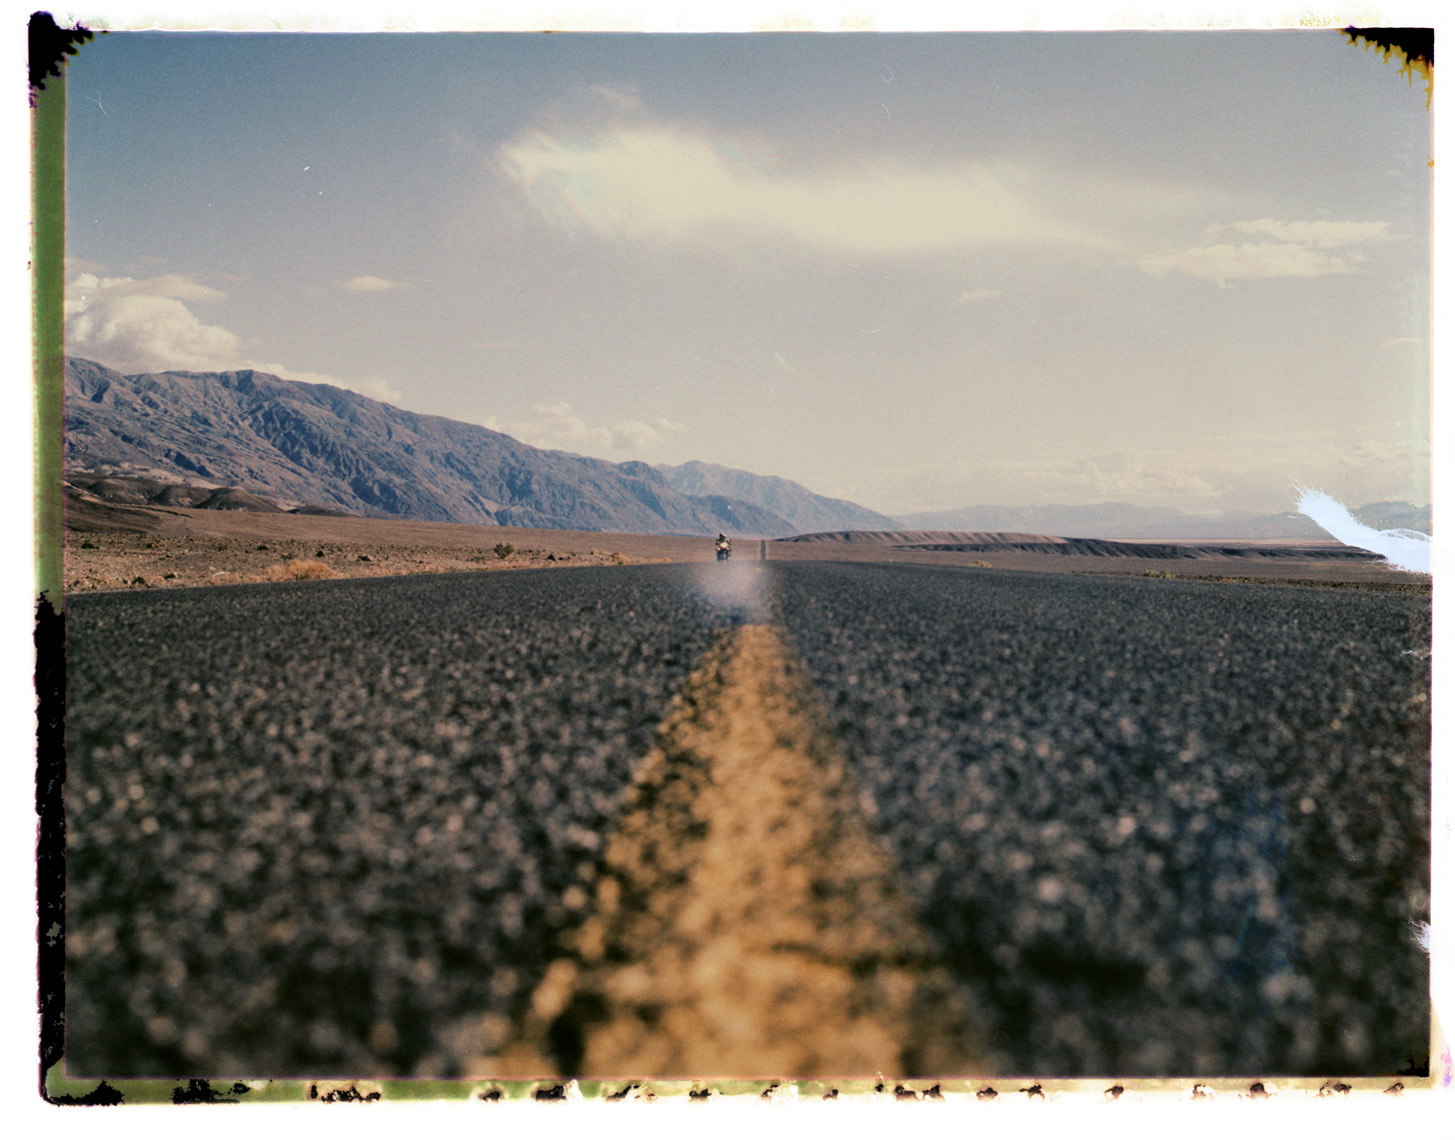 A desert road in Nevada USA